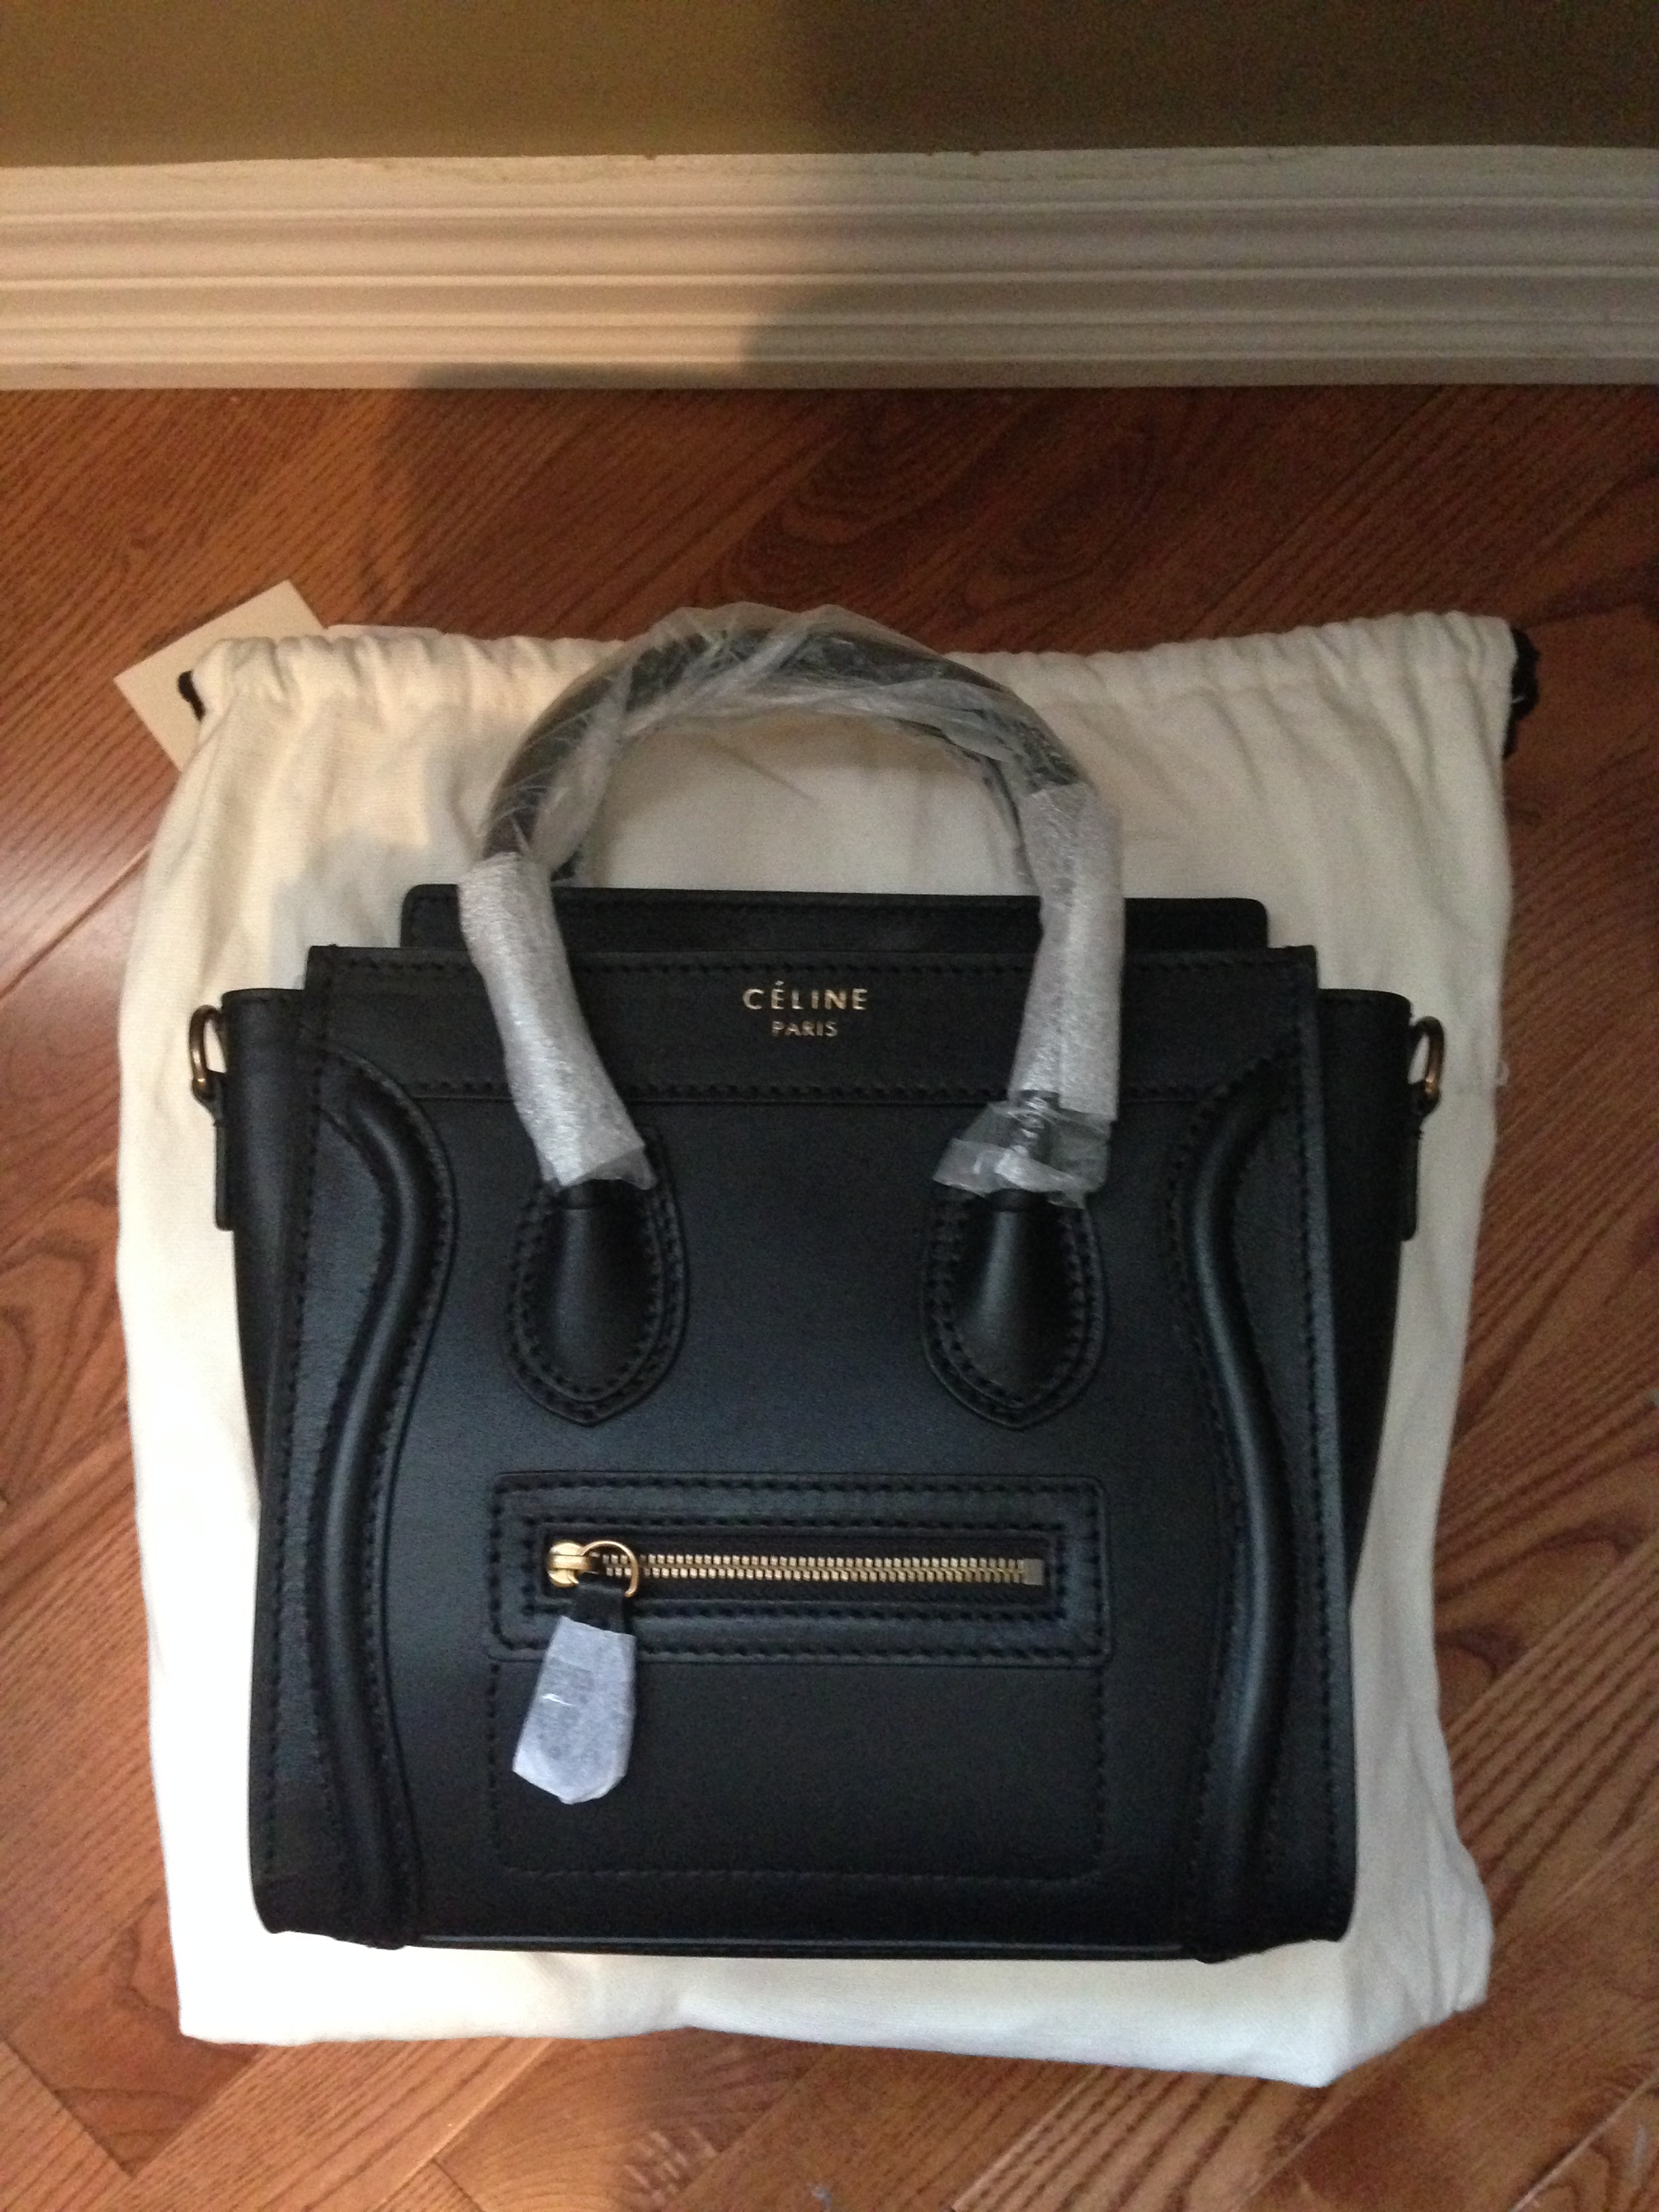 Louis Vuitton Authentic And Replica Bags Handbags Reviews Celine Nano From Perfect Celine Review! – Authentic